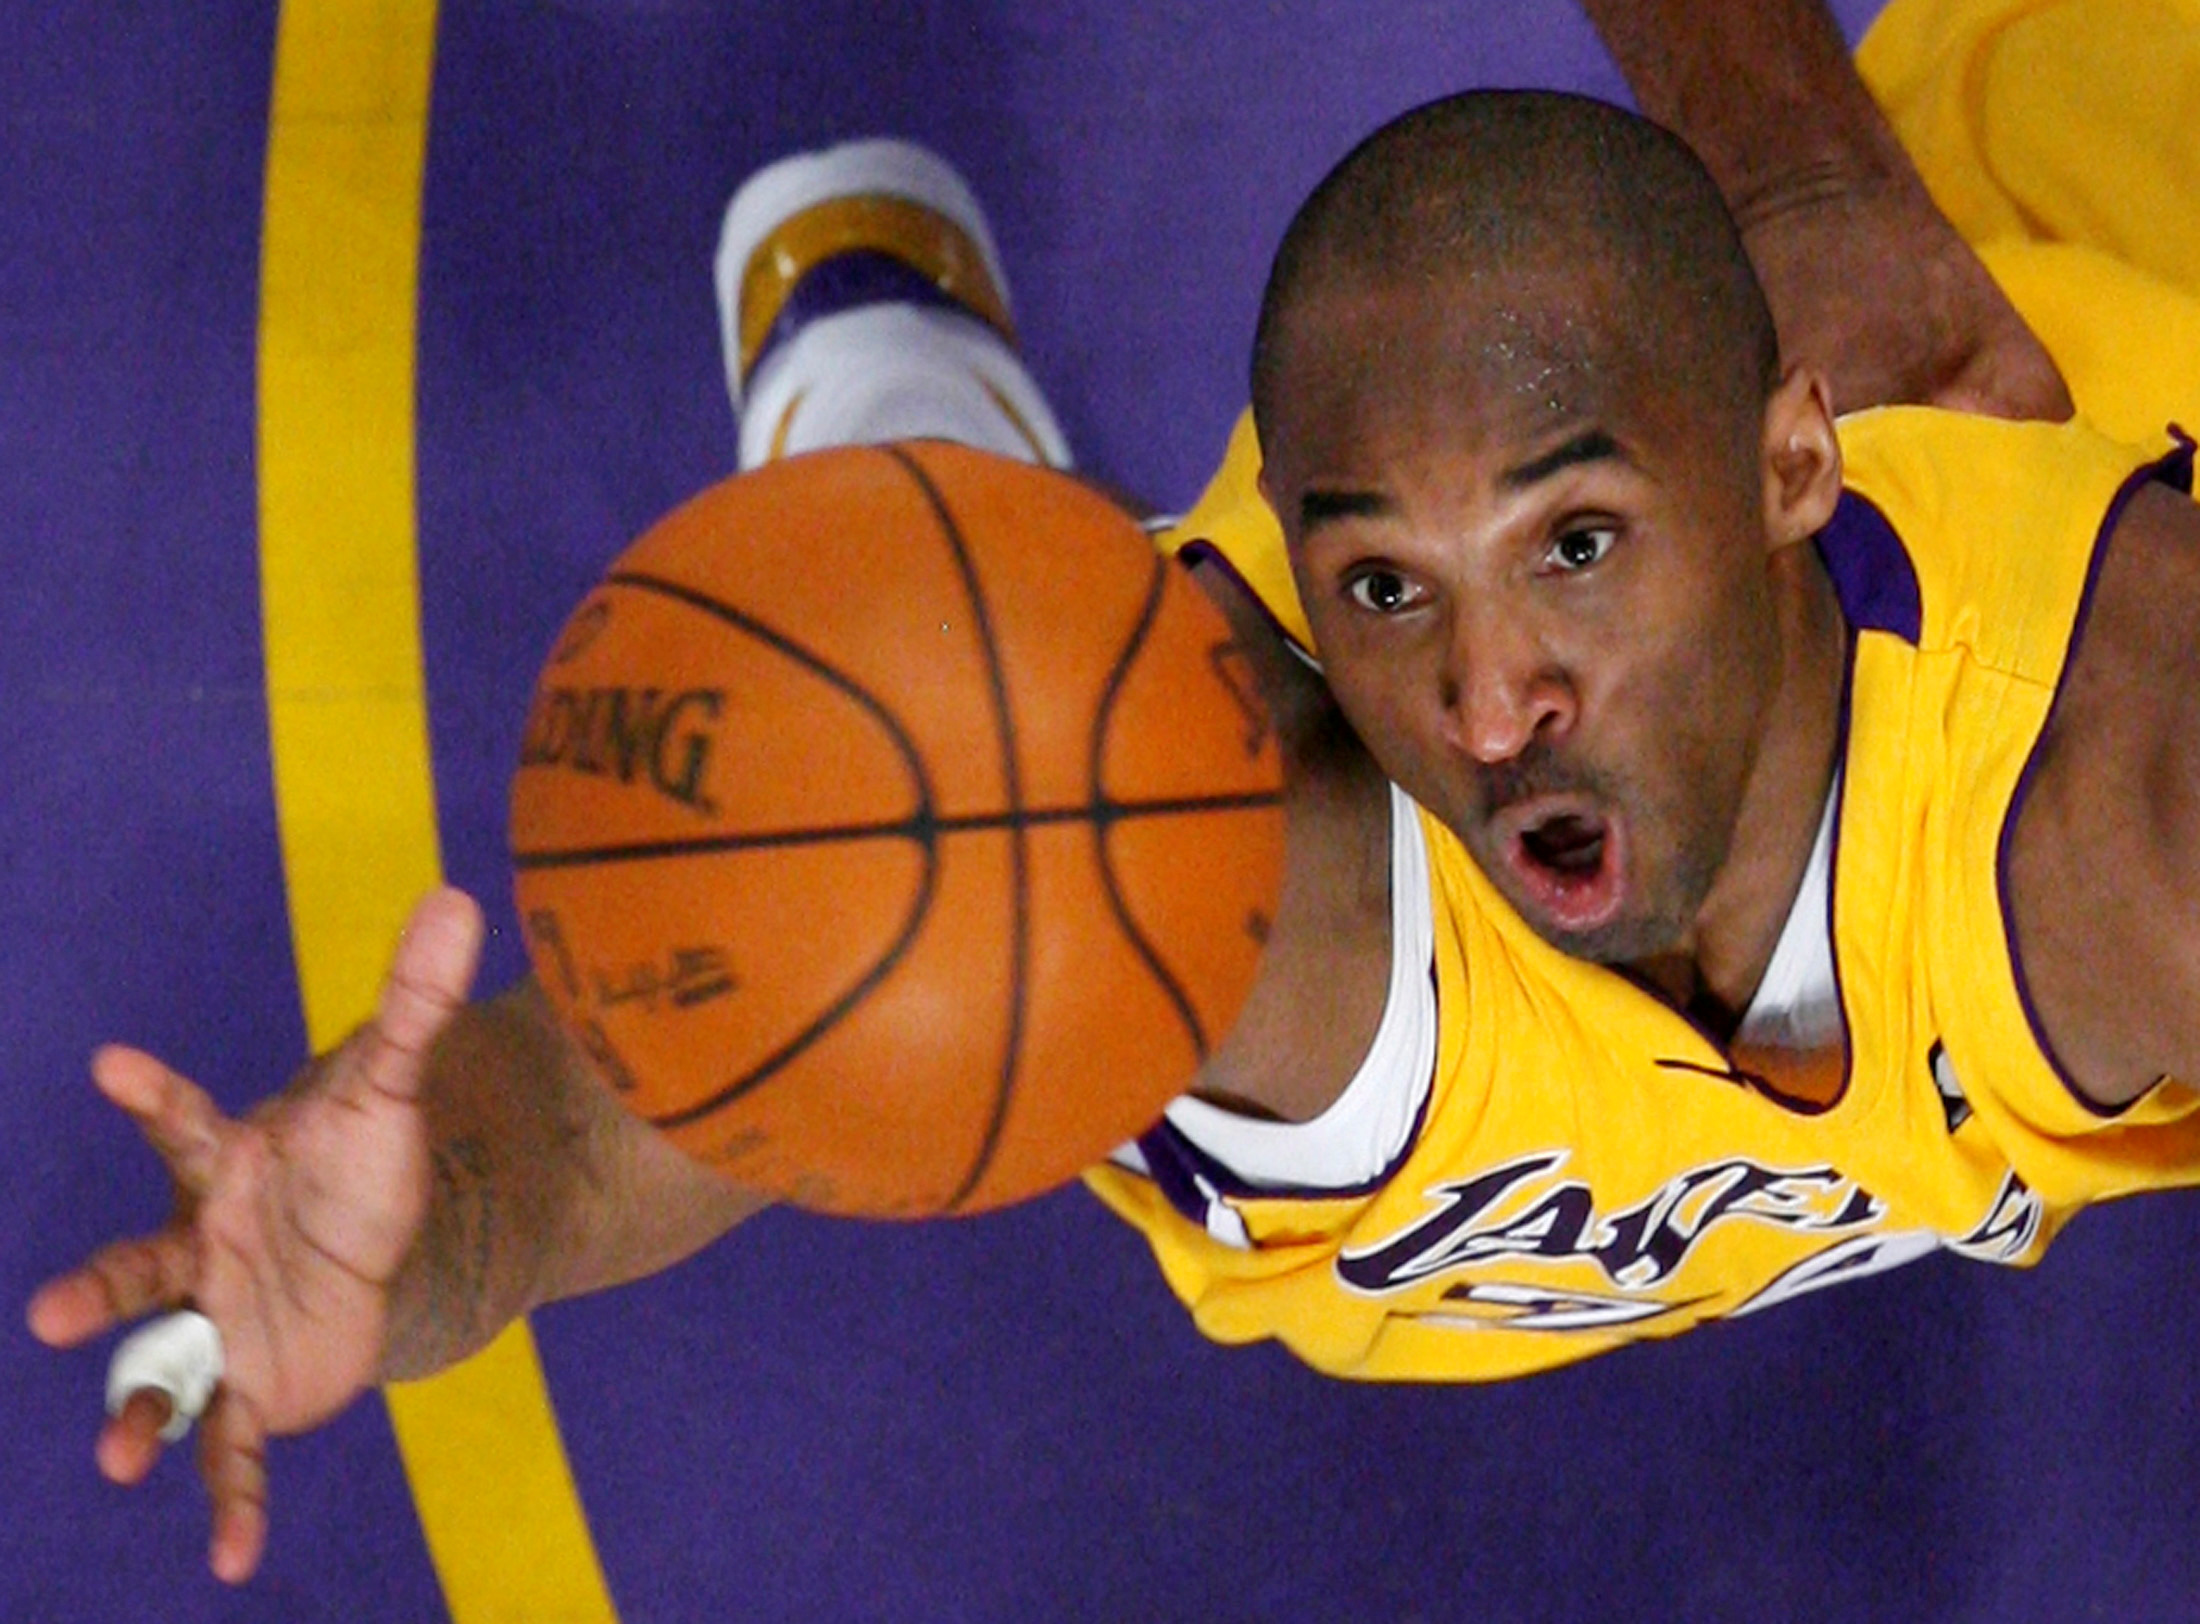 Los Angeles Lakers Kobe Bryant jumps for a rebound against the Denver Nuggets during Game 2 of their NBA Western Conference final basketball playoff game in Los Angeles, California, U.S. May 21, 2009.  REUTERS/Lucy Nicholson/File Photo